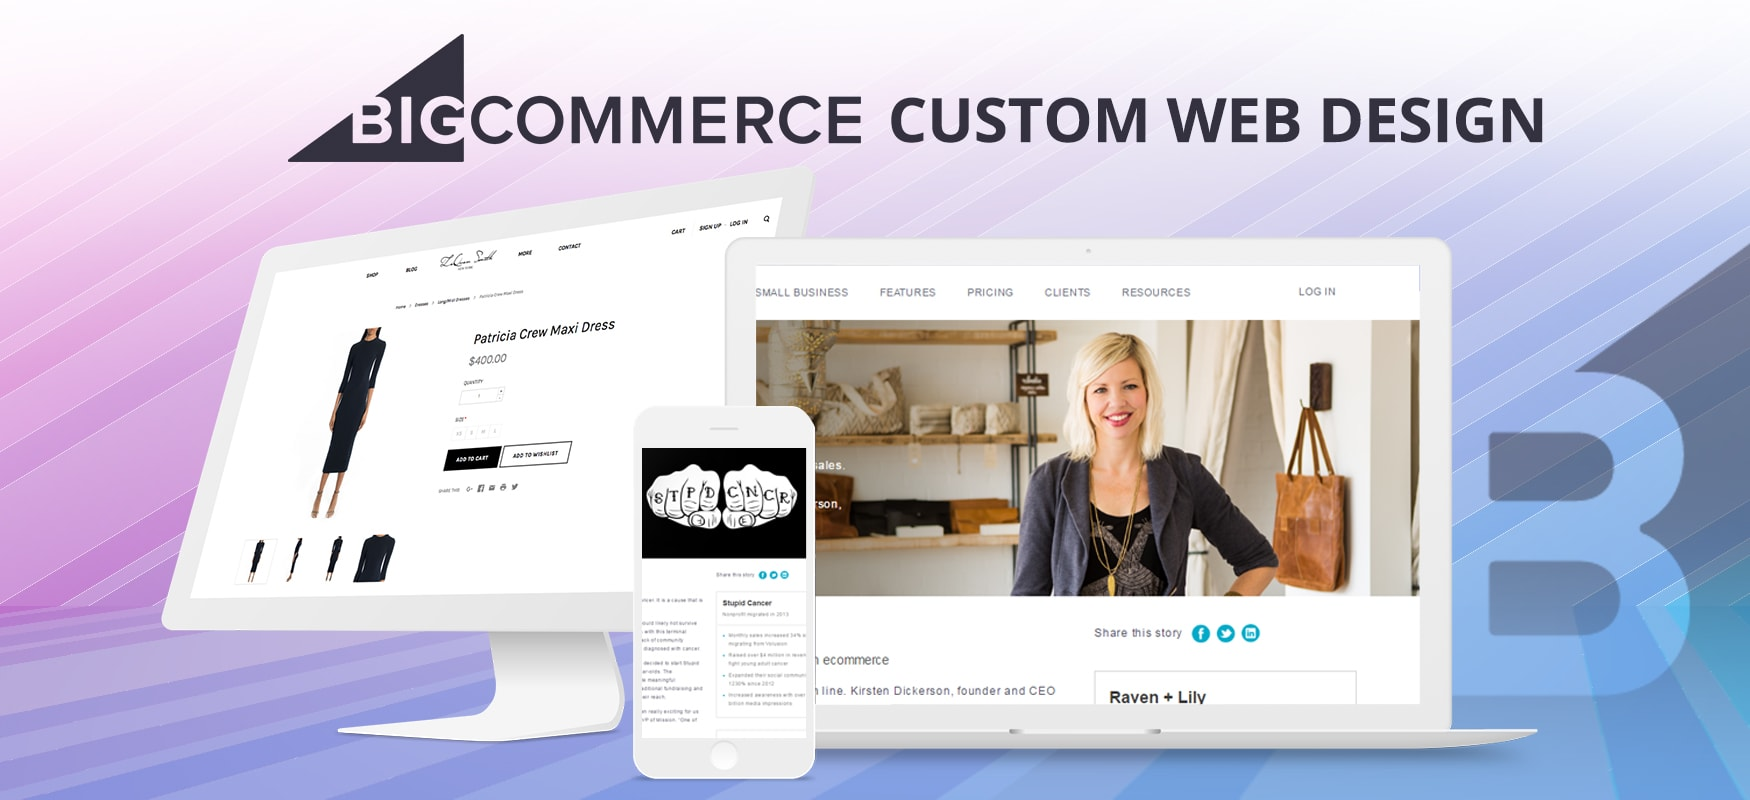 The Importance of Quality BigCommerce Web Design